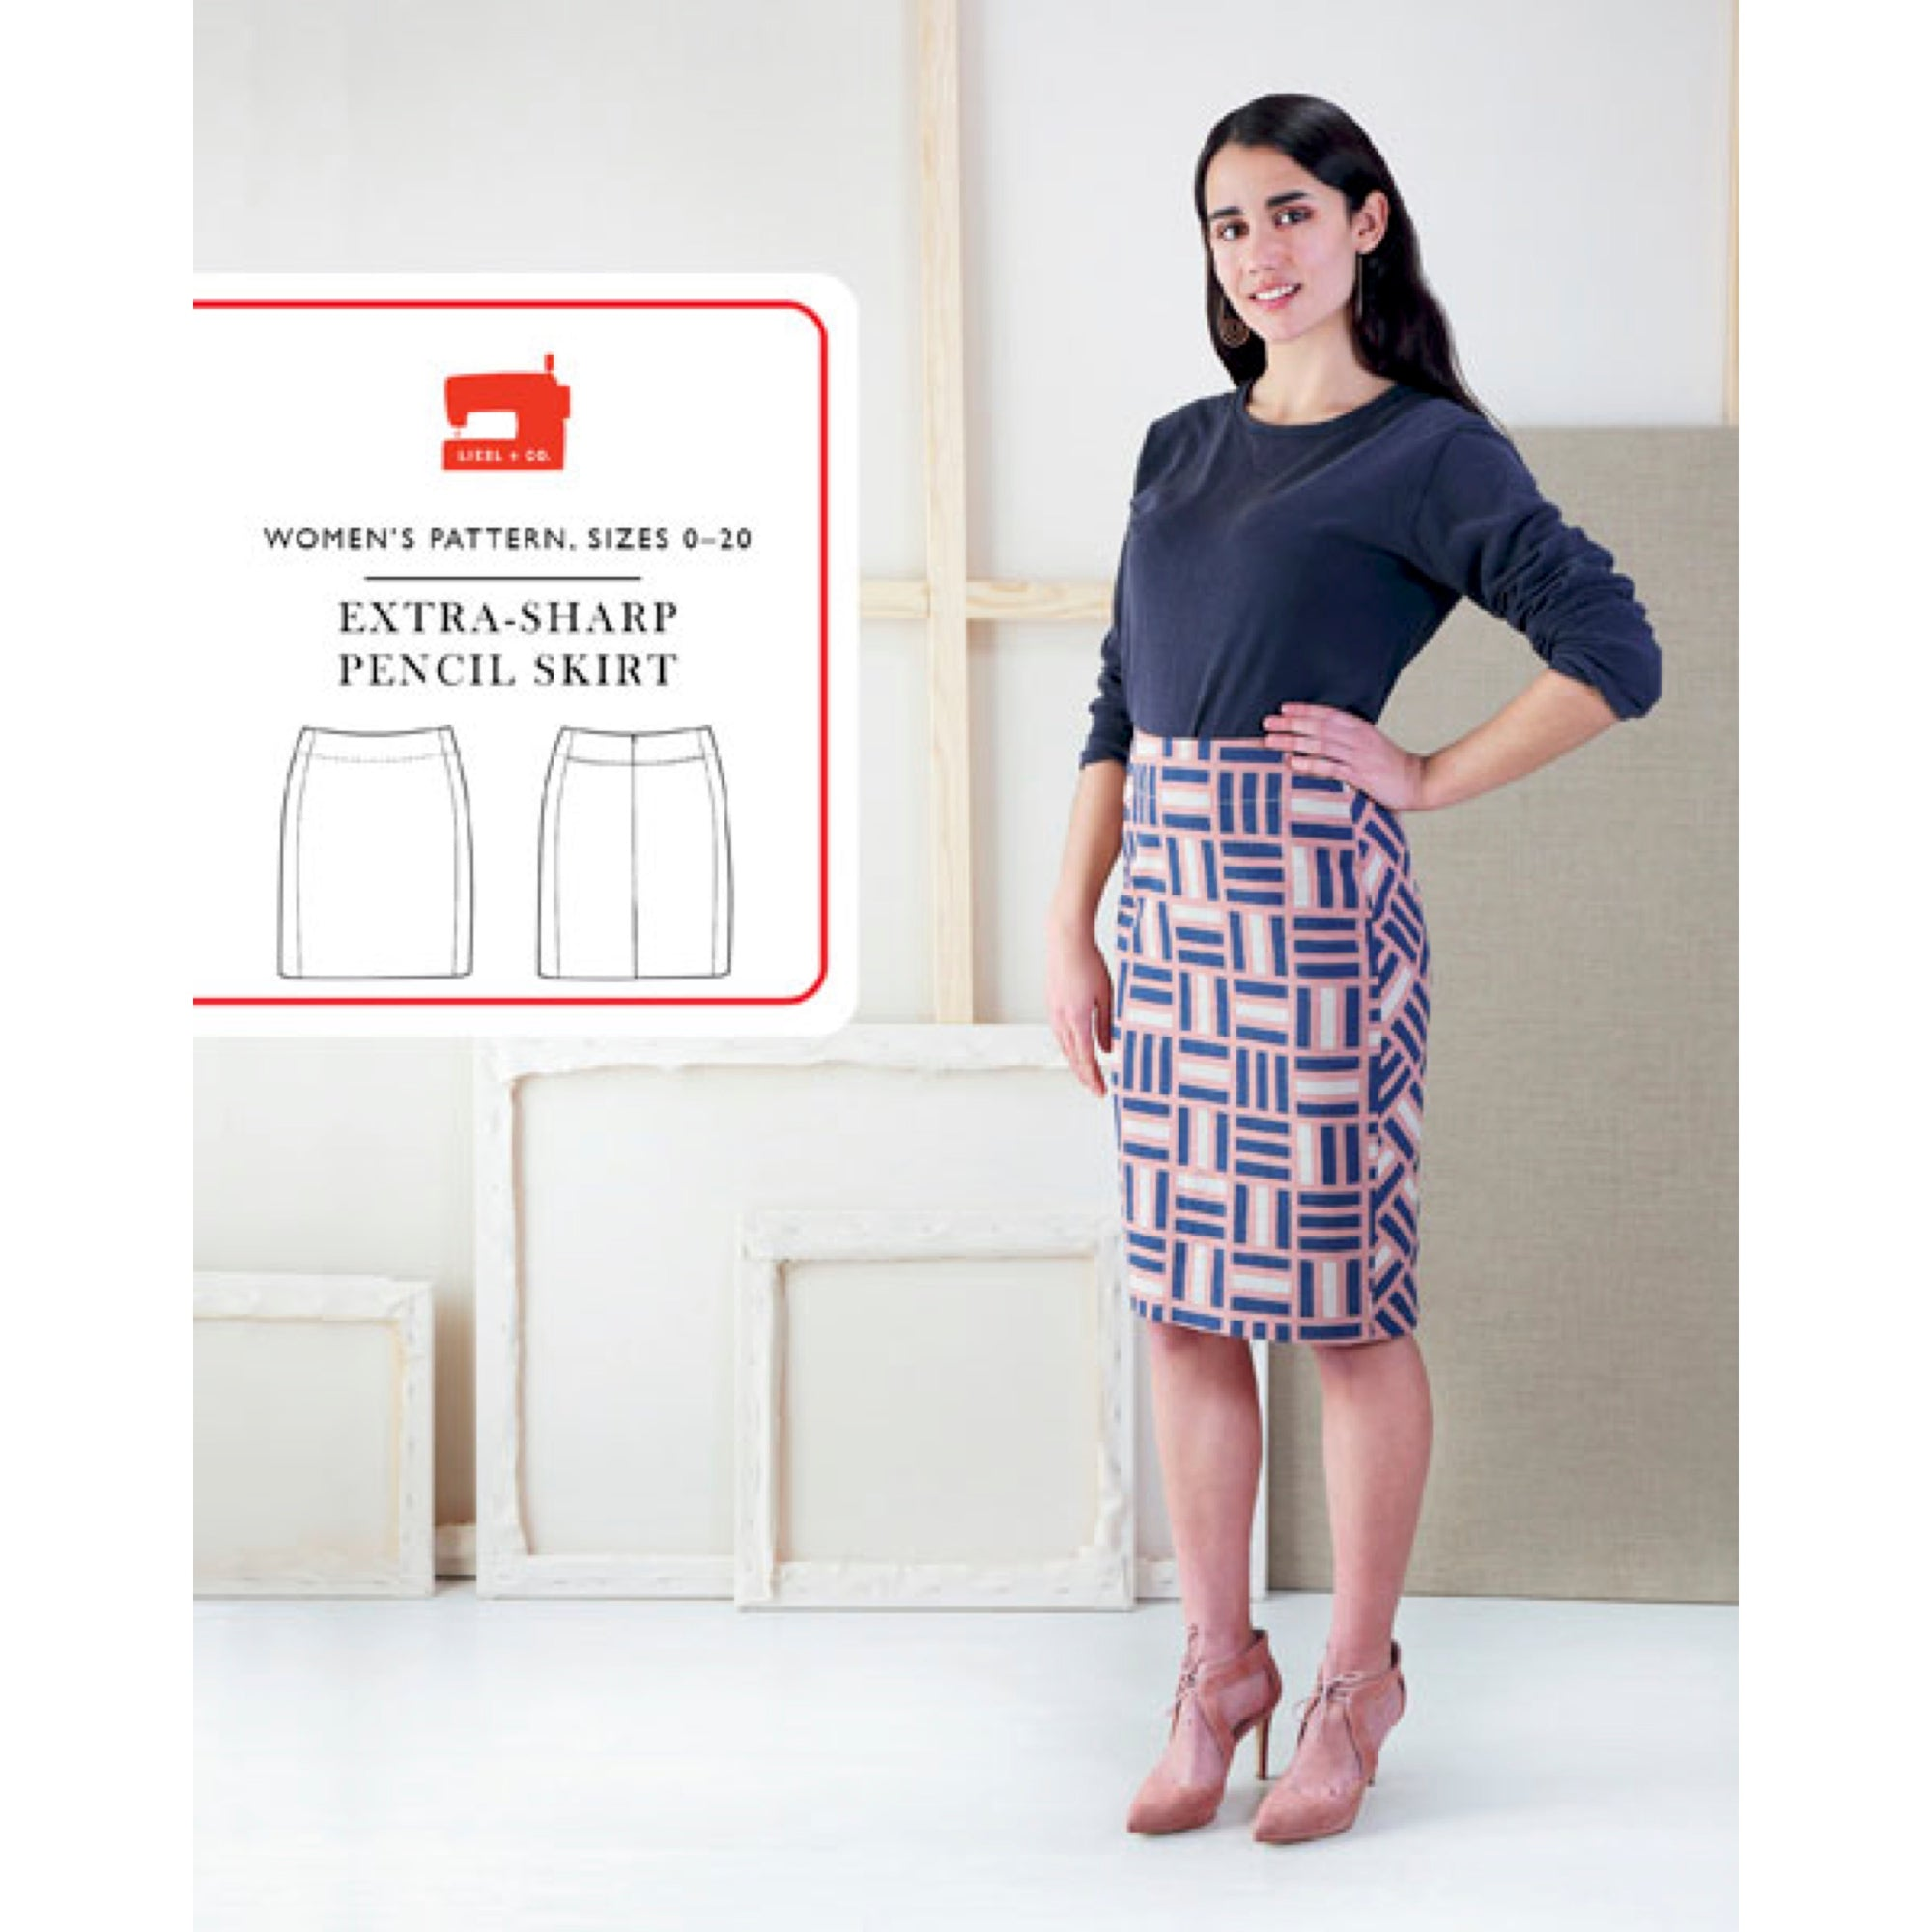 Extra-sharp pencil skirt pattern